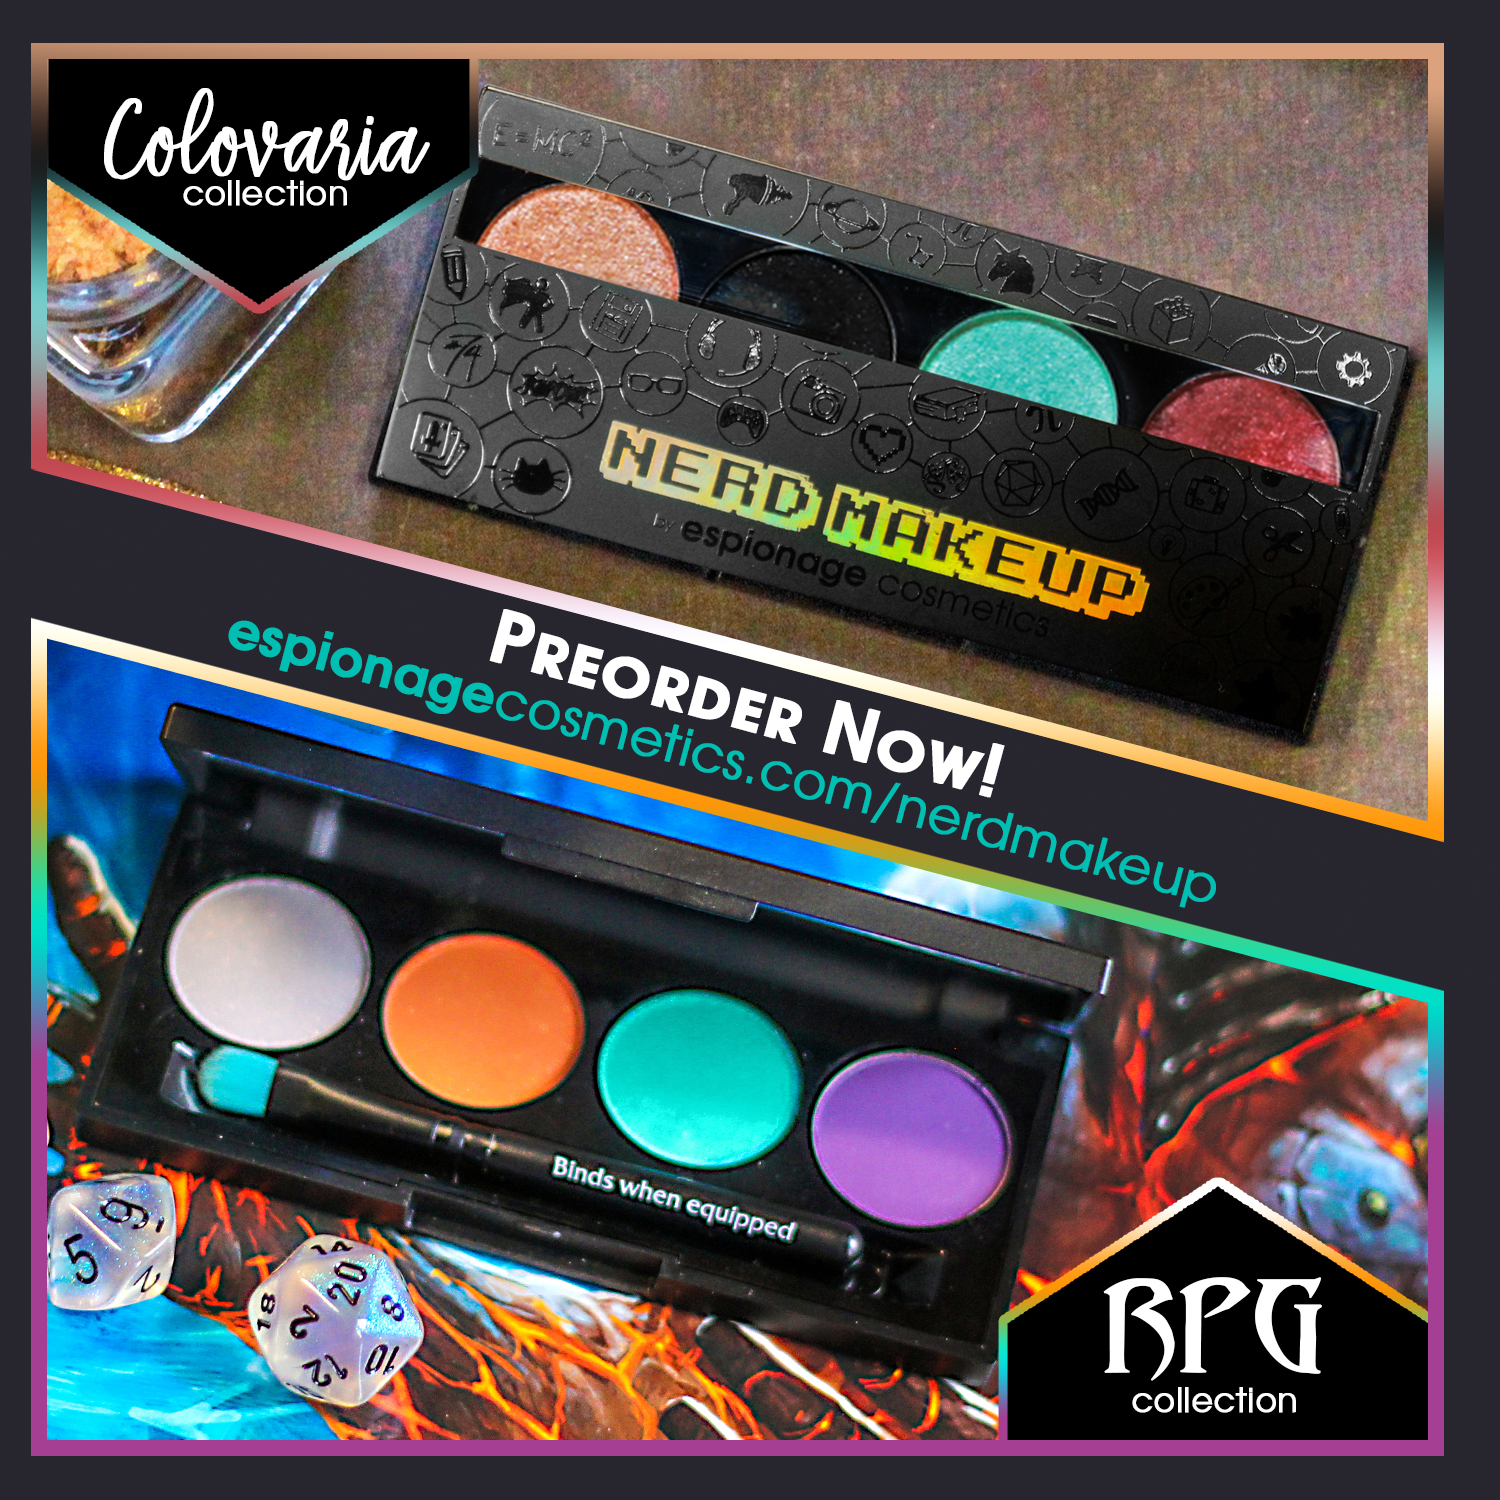 For the last several months, Espionage Cosmetics has been a buzzing topic over their makeup palette teasers. A photo showcasing the four makeup colors based ...